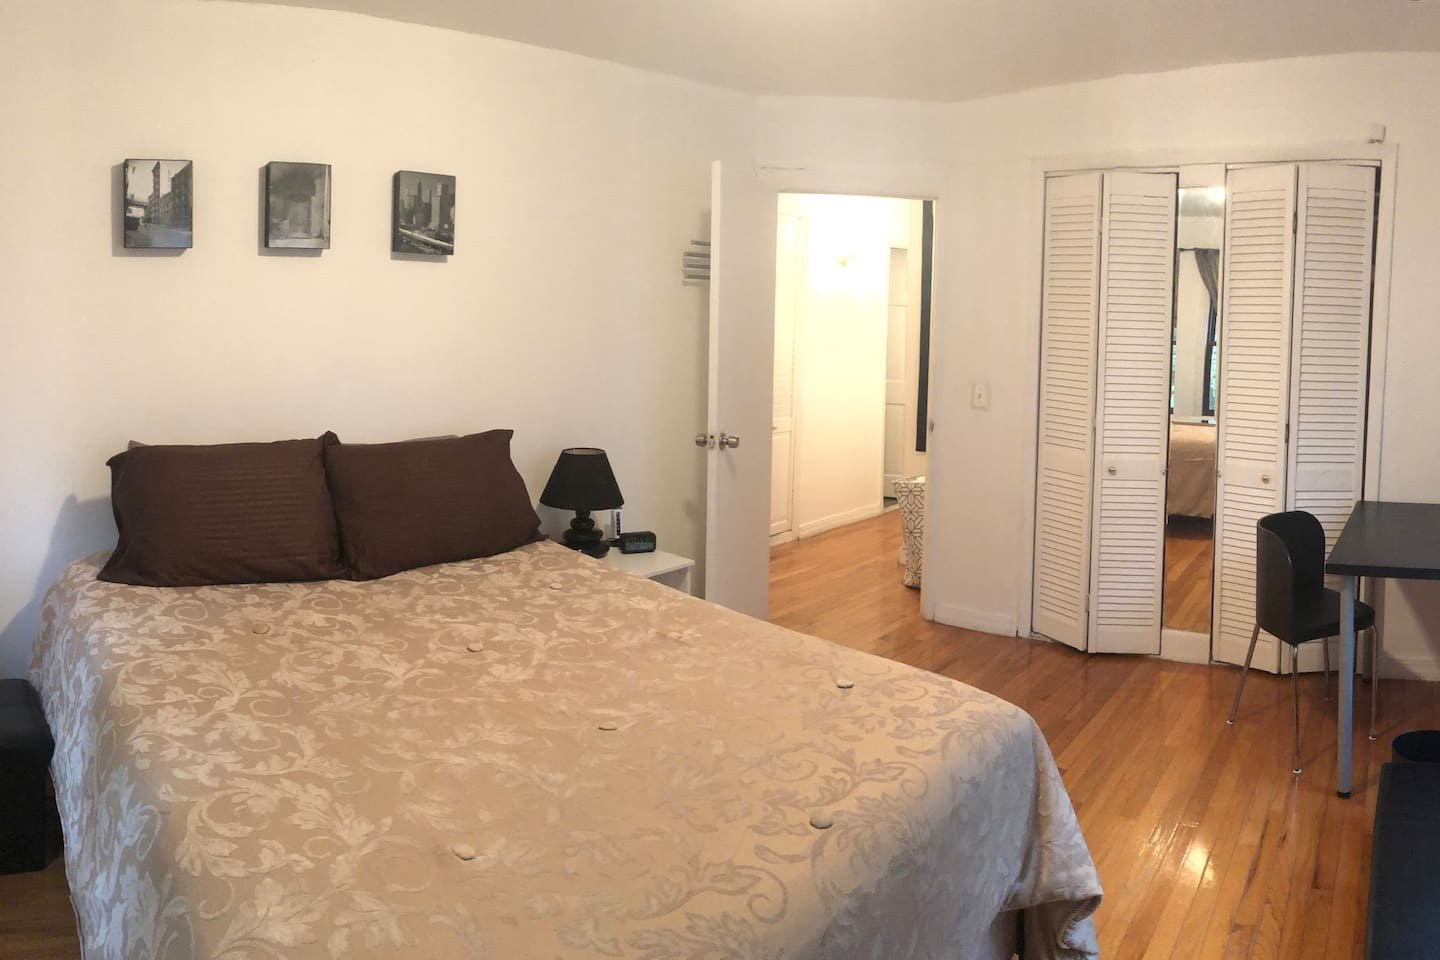 Spacious private bedroom with Queen size bed and great closet space with natural light.